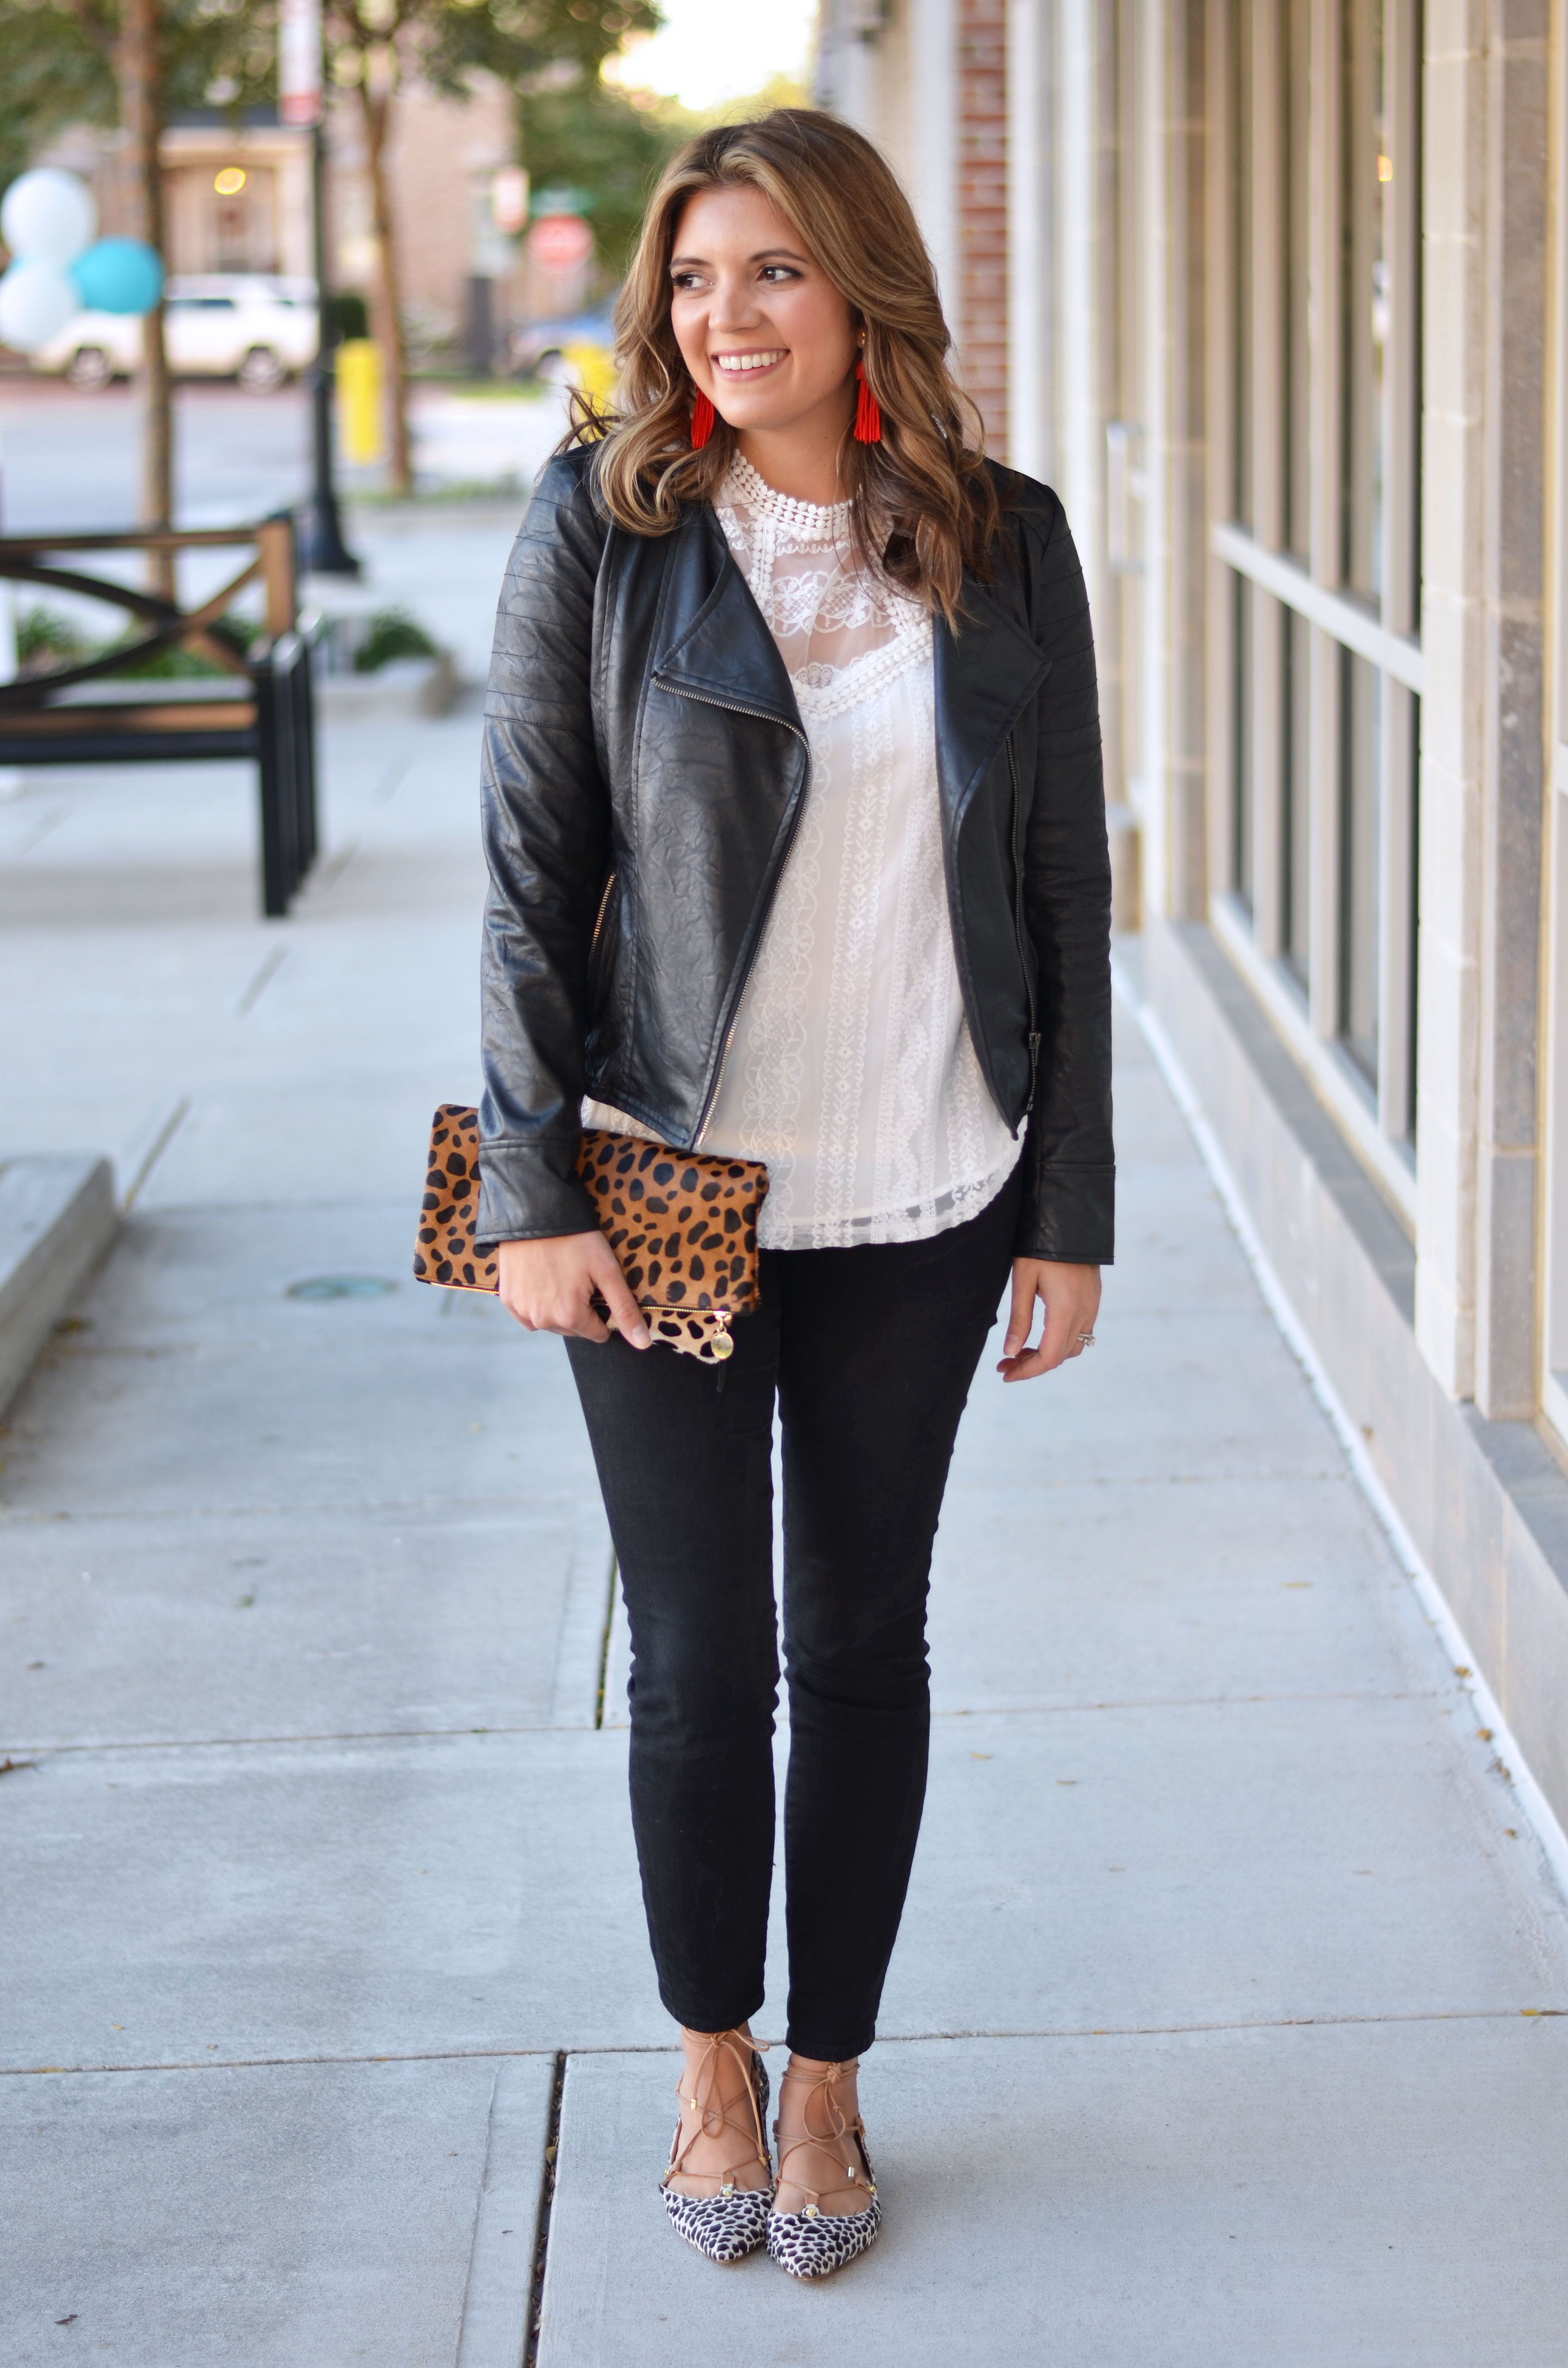 8a6f04b3c2 faux leather moto jacket outfit - black moto jacket with white lace top and  cheetah print clutch | www.bylaurenm.com